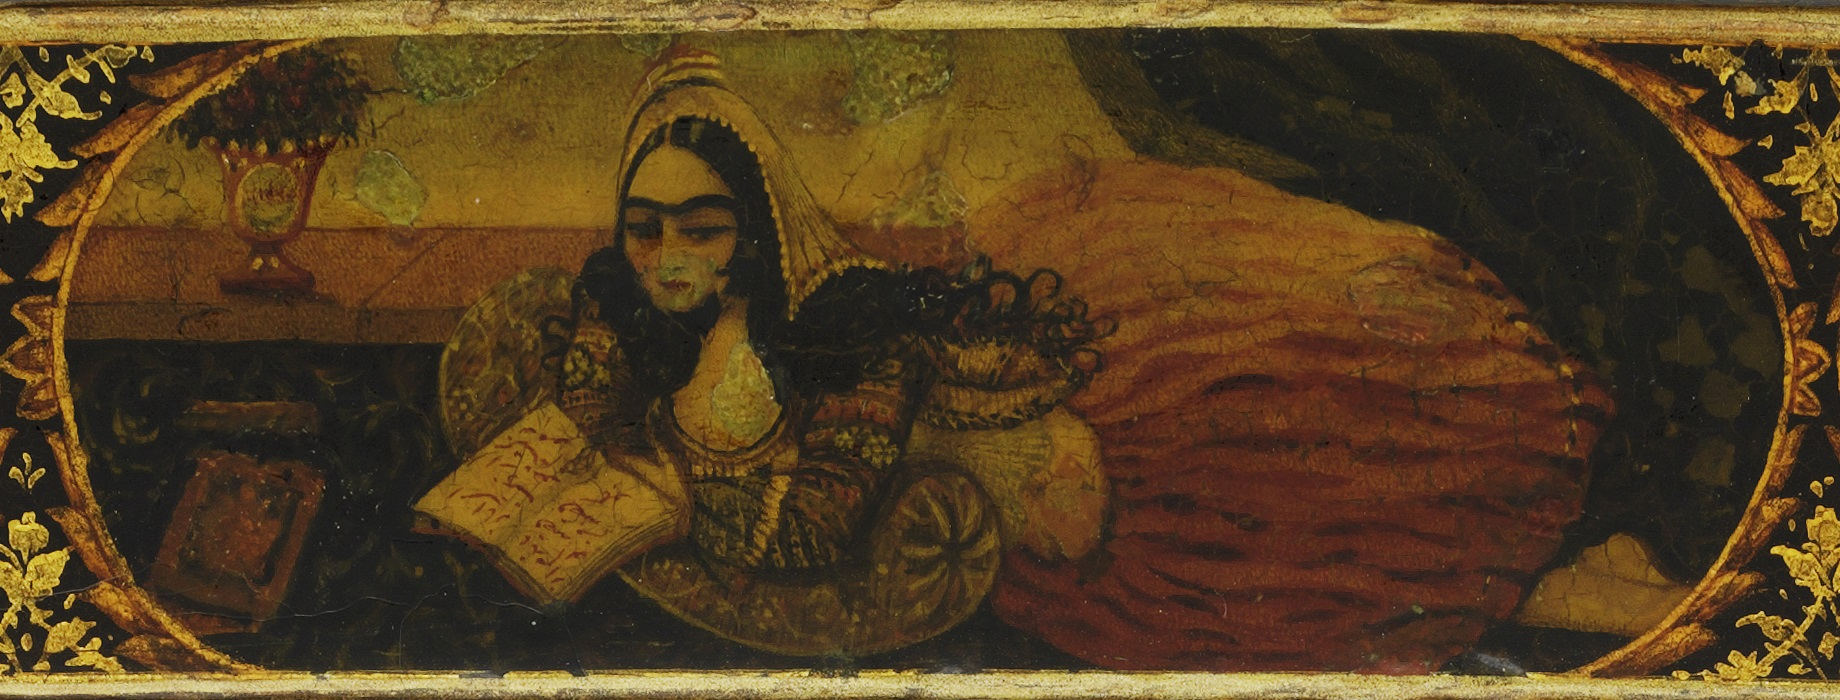 A young woman lies prone on a floral carpet, her elbows are propped up on a cushion, and her hands hold a book with Persian writing. She wears elaborate clothing, including a bright red skirt and a head scarf. A vase with flowers is in the background.